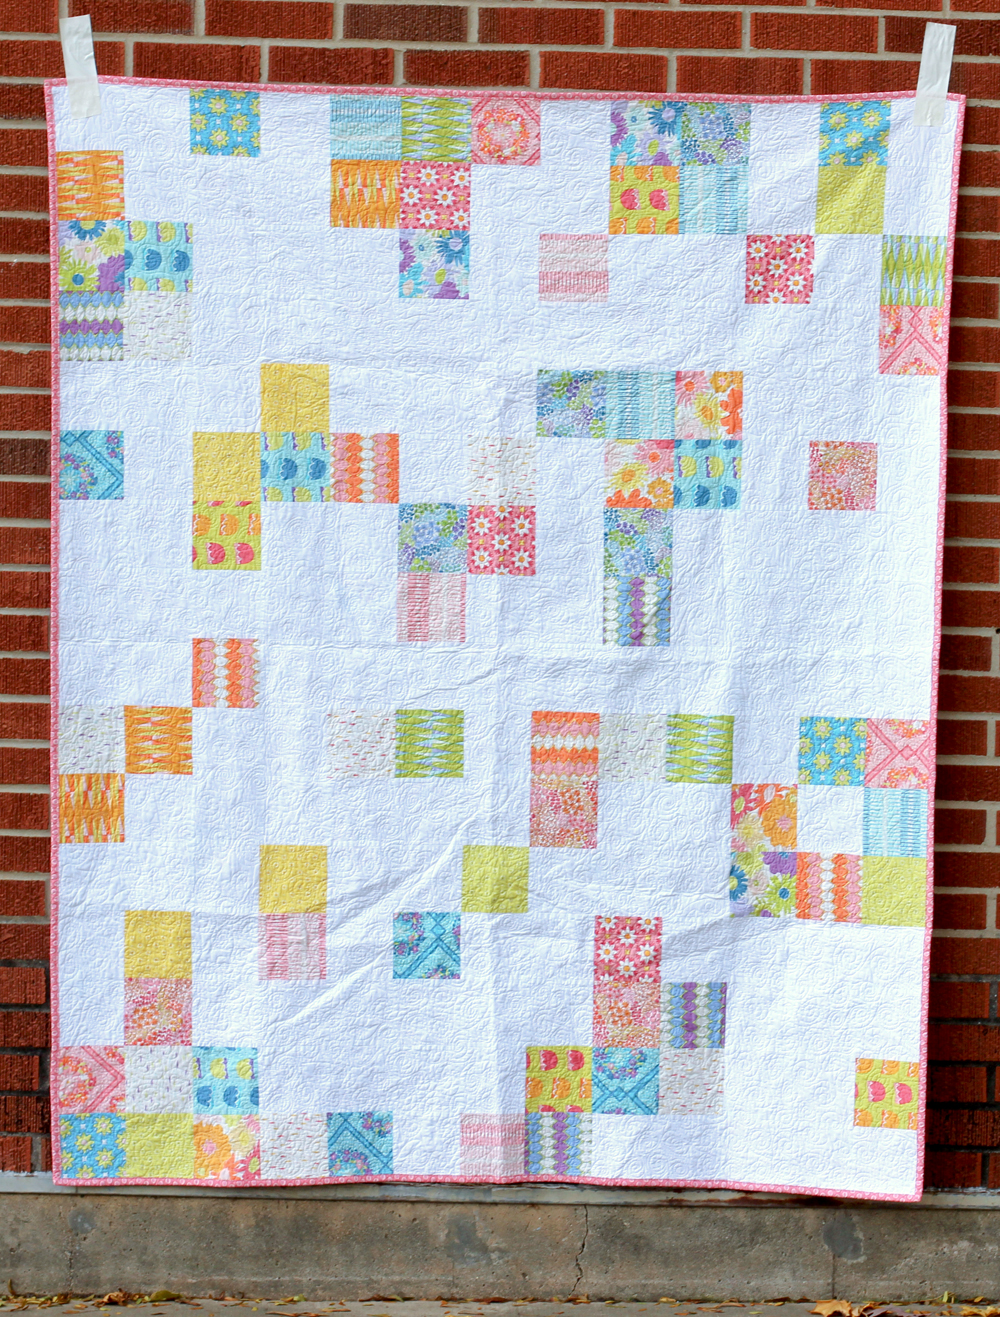 http://www.jenibakerpatterns.com/product/lazy-daisy-quilt-pdf-pattern